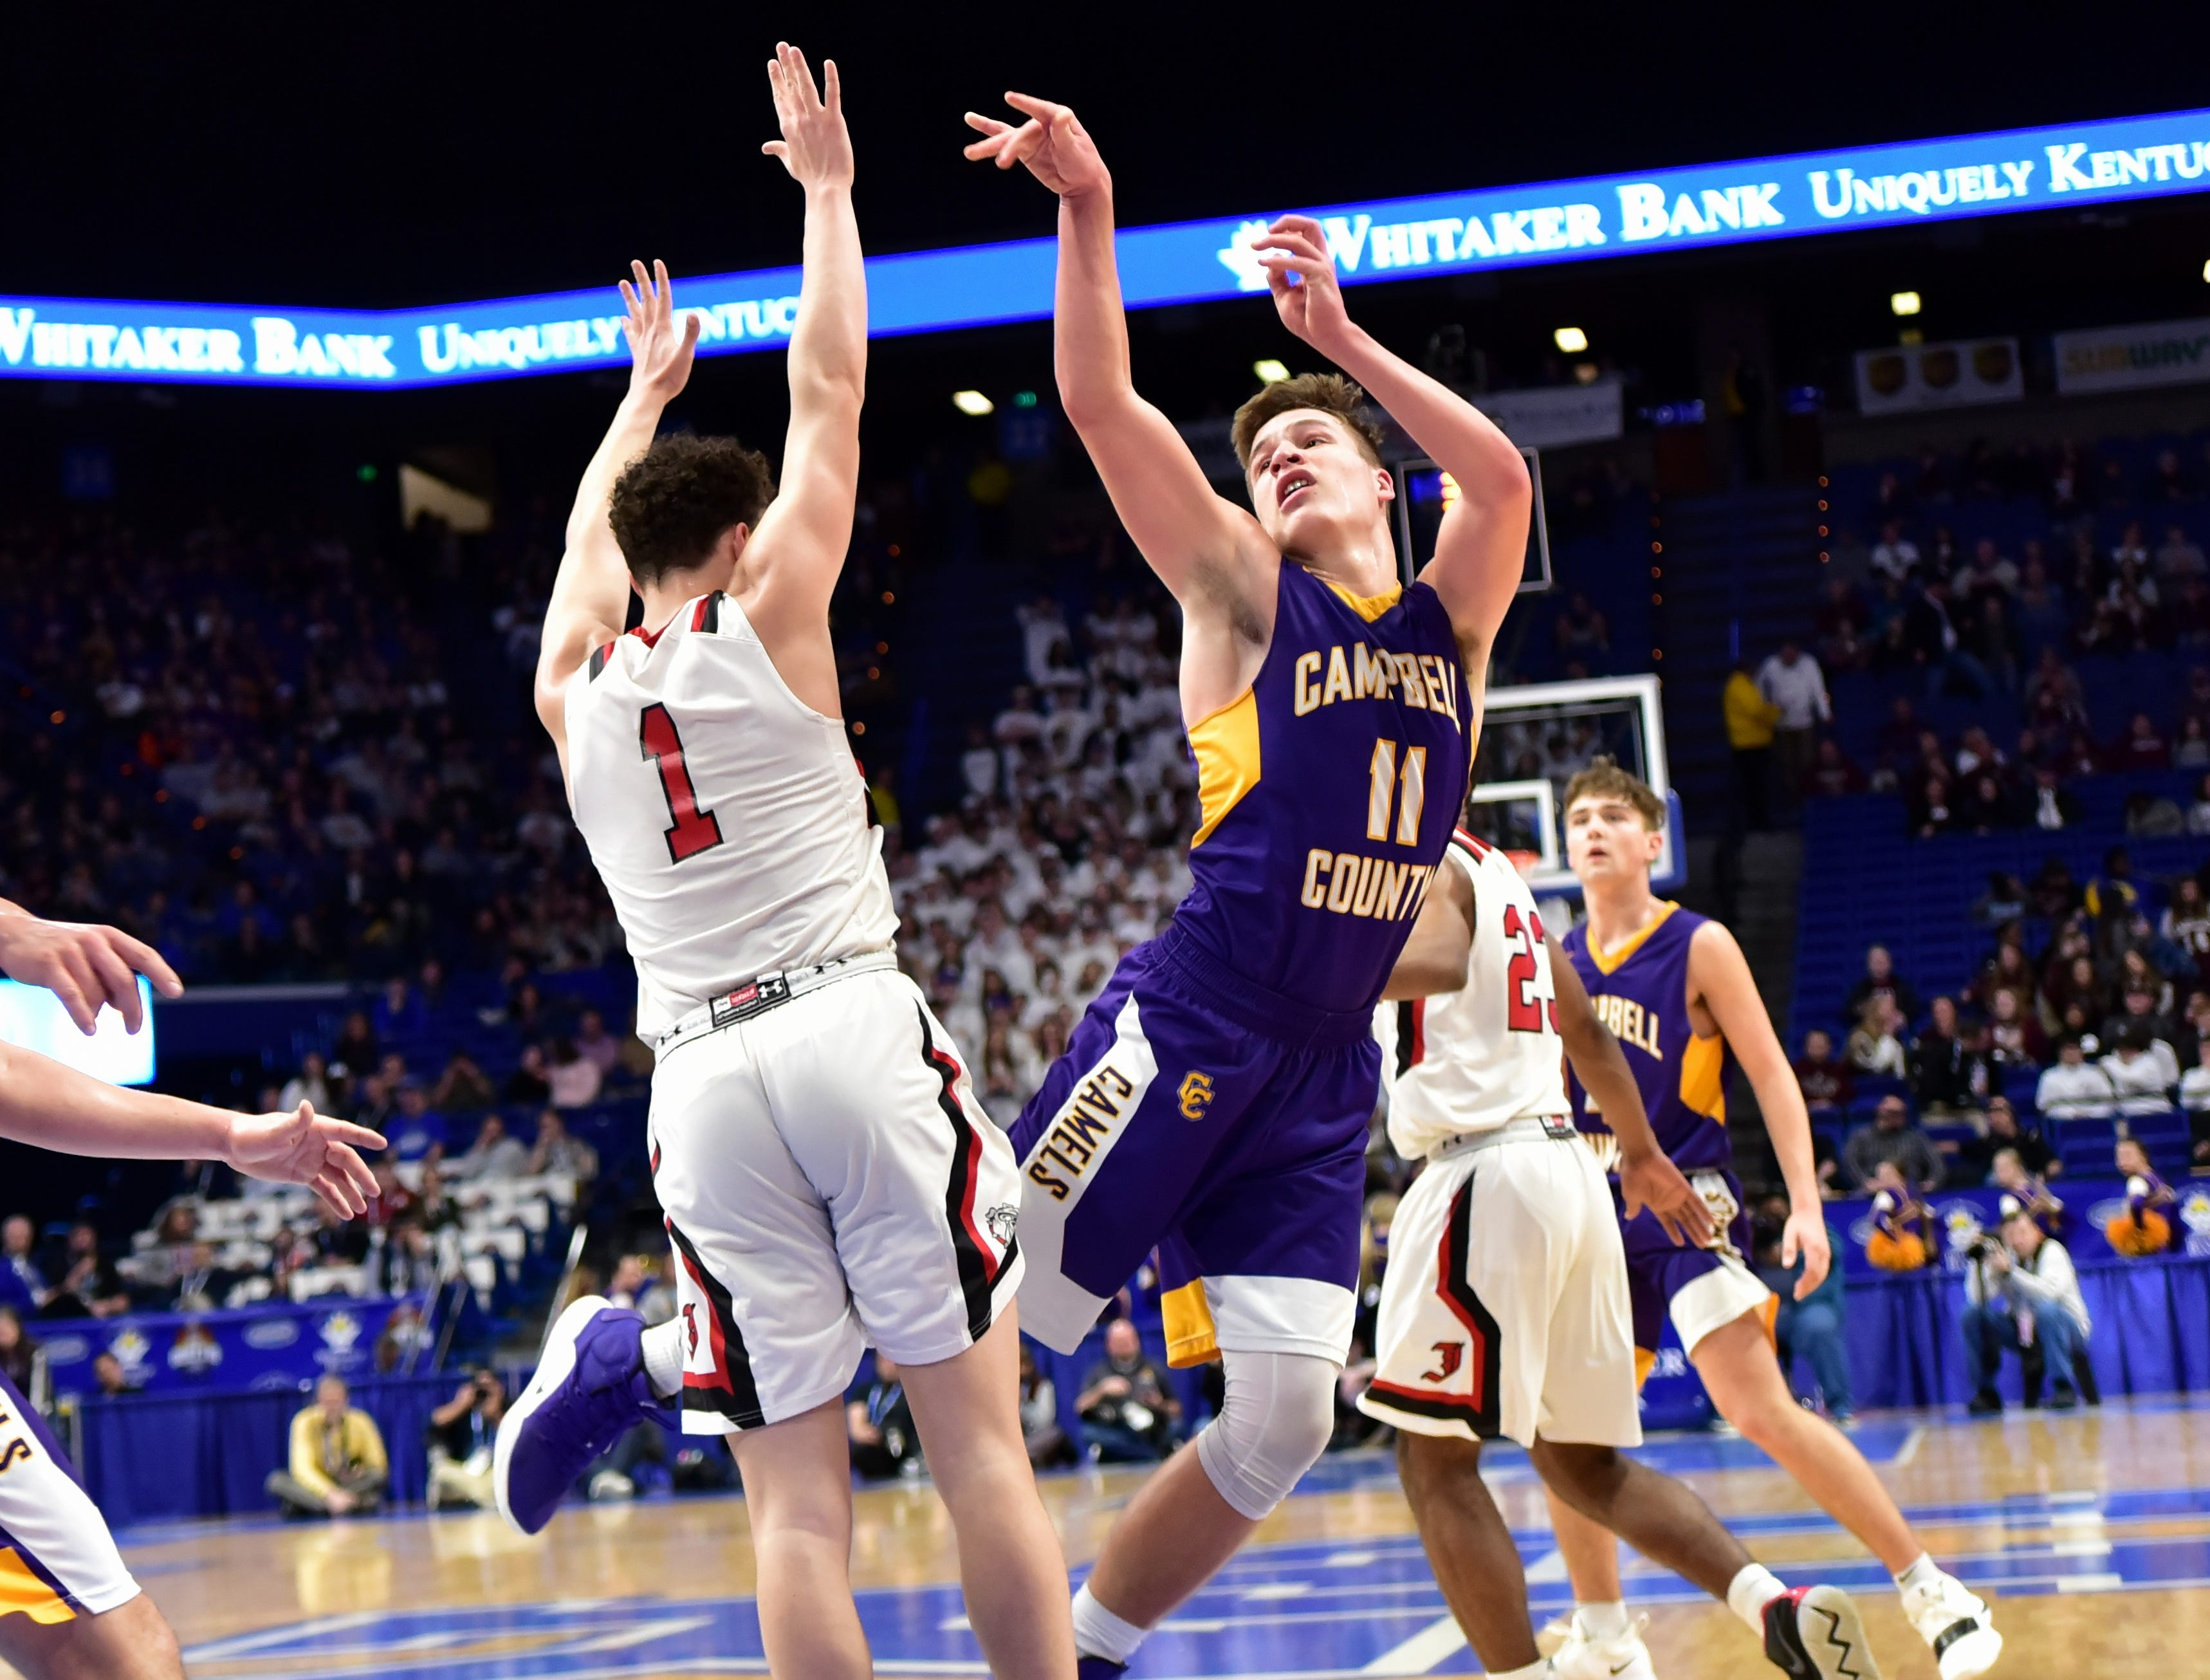 Reid Jolly (11) collects one of many trips to the foul line for Campbell County at the KHSAA Sweet 16 Tournament at Rupp Arena in Lexington, KY, March 6, 2019